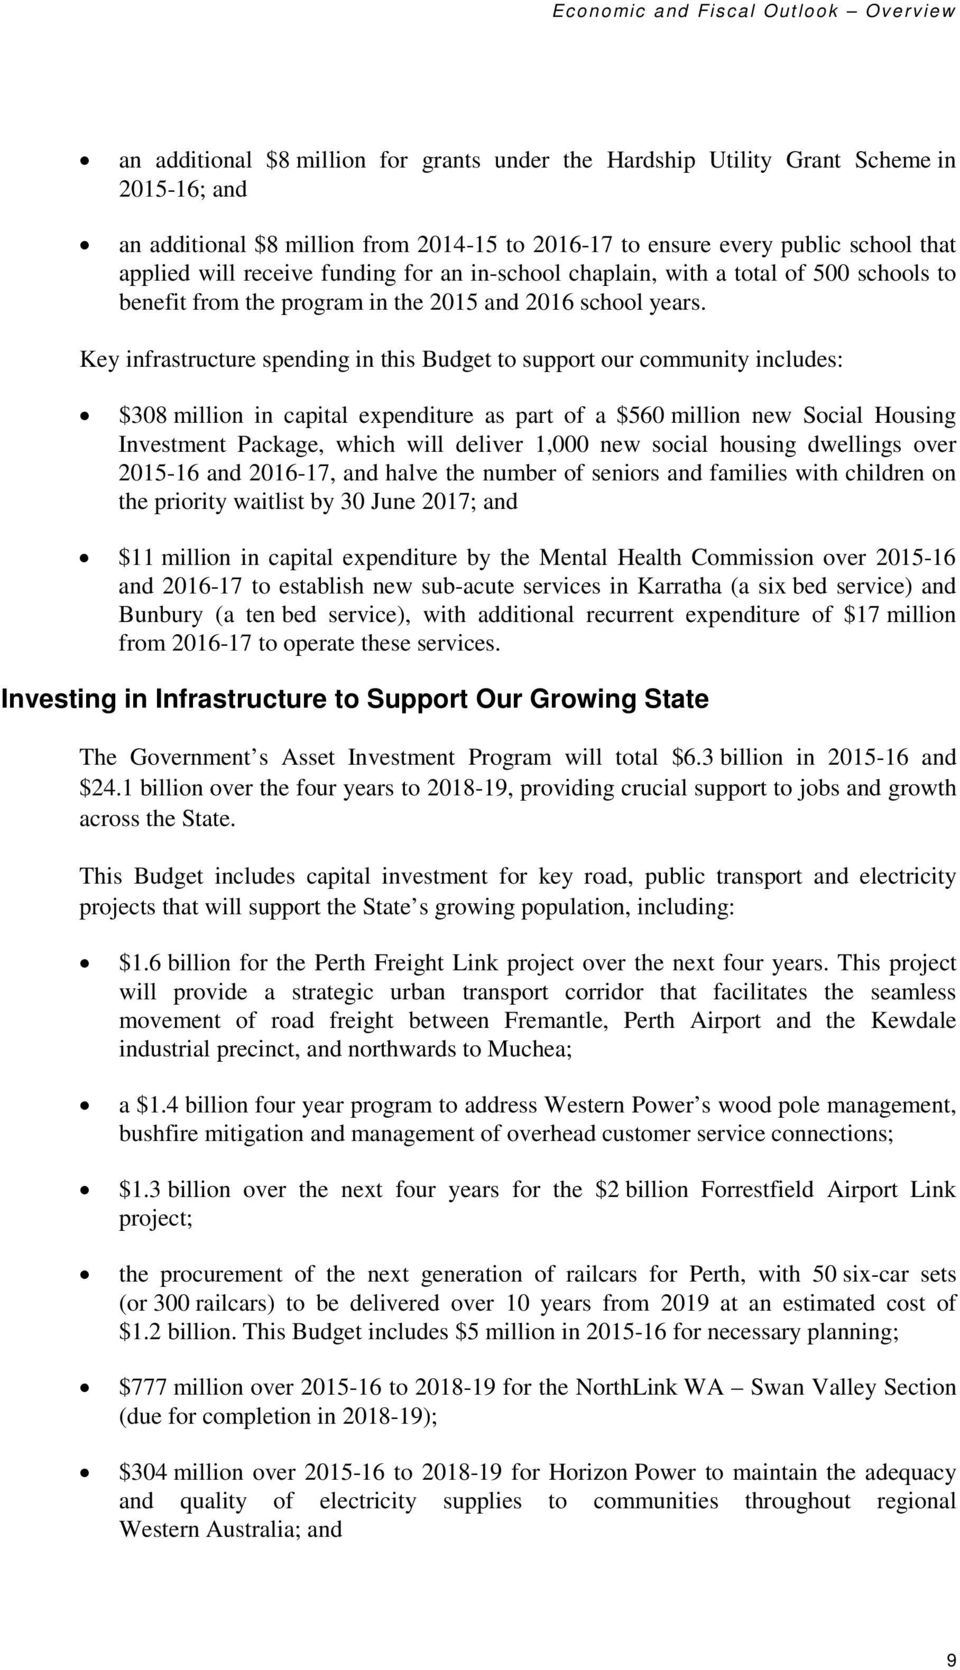 Key infrastructure spending in this Budget to support our community includes: $308 million in capital expenditure as part of a $560 million new Social Housing Investment Package, which will deliver